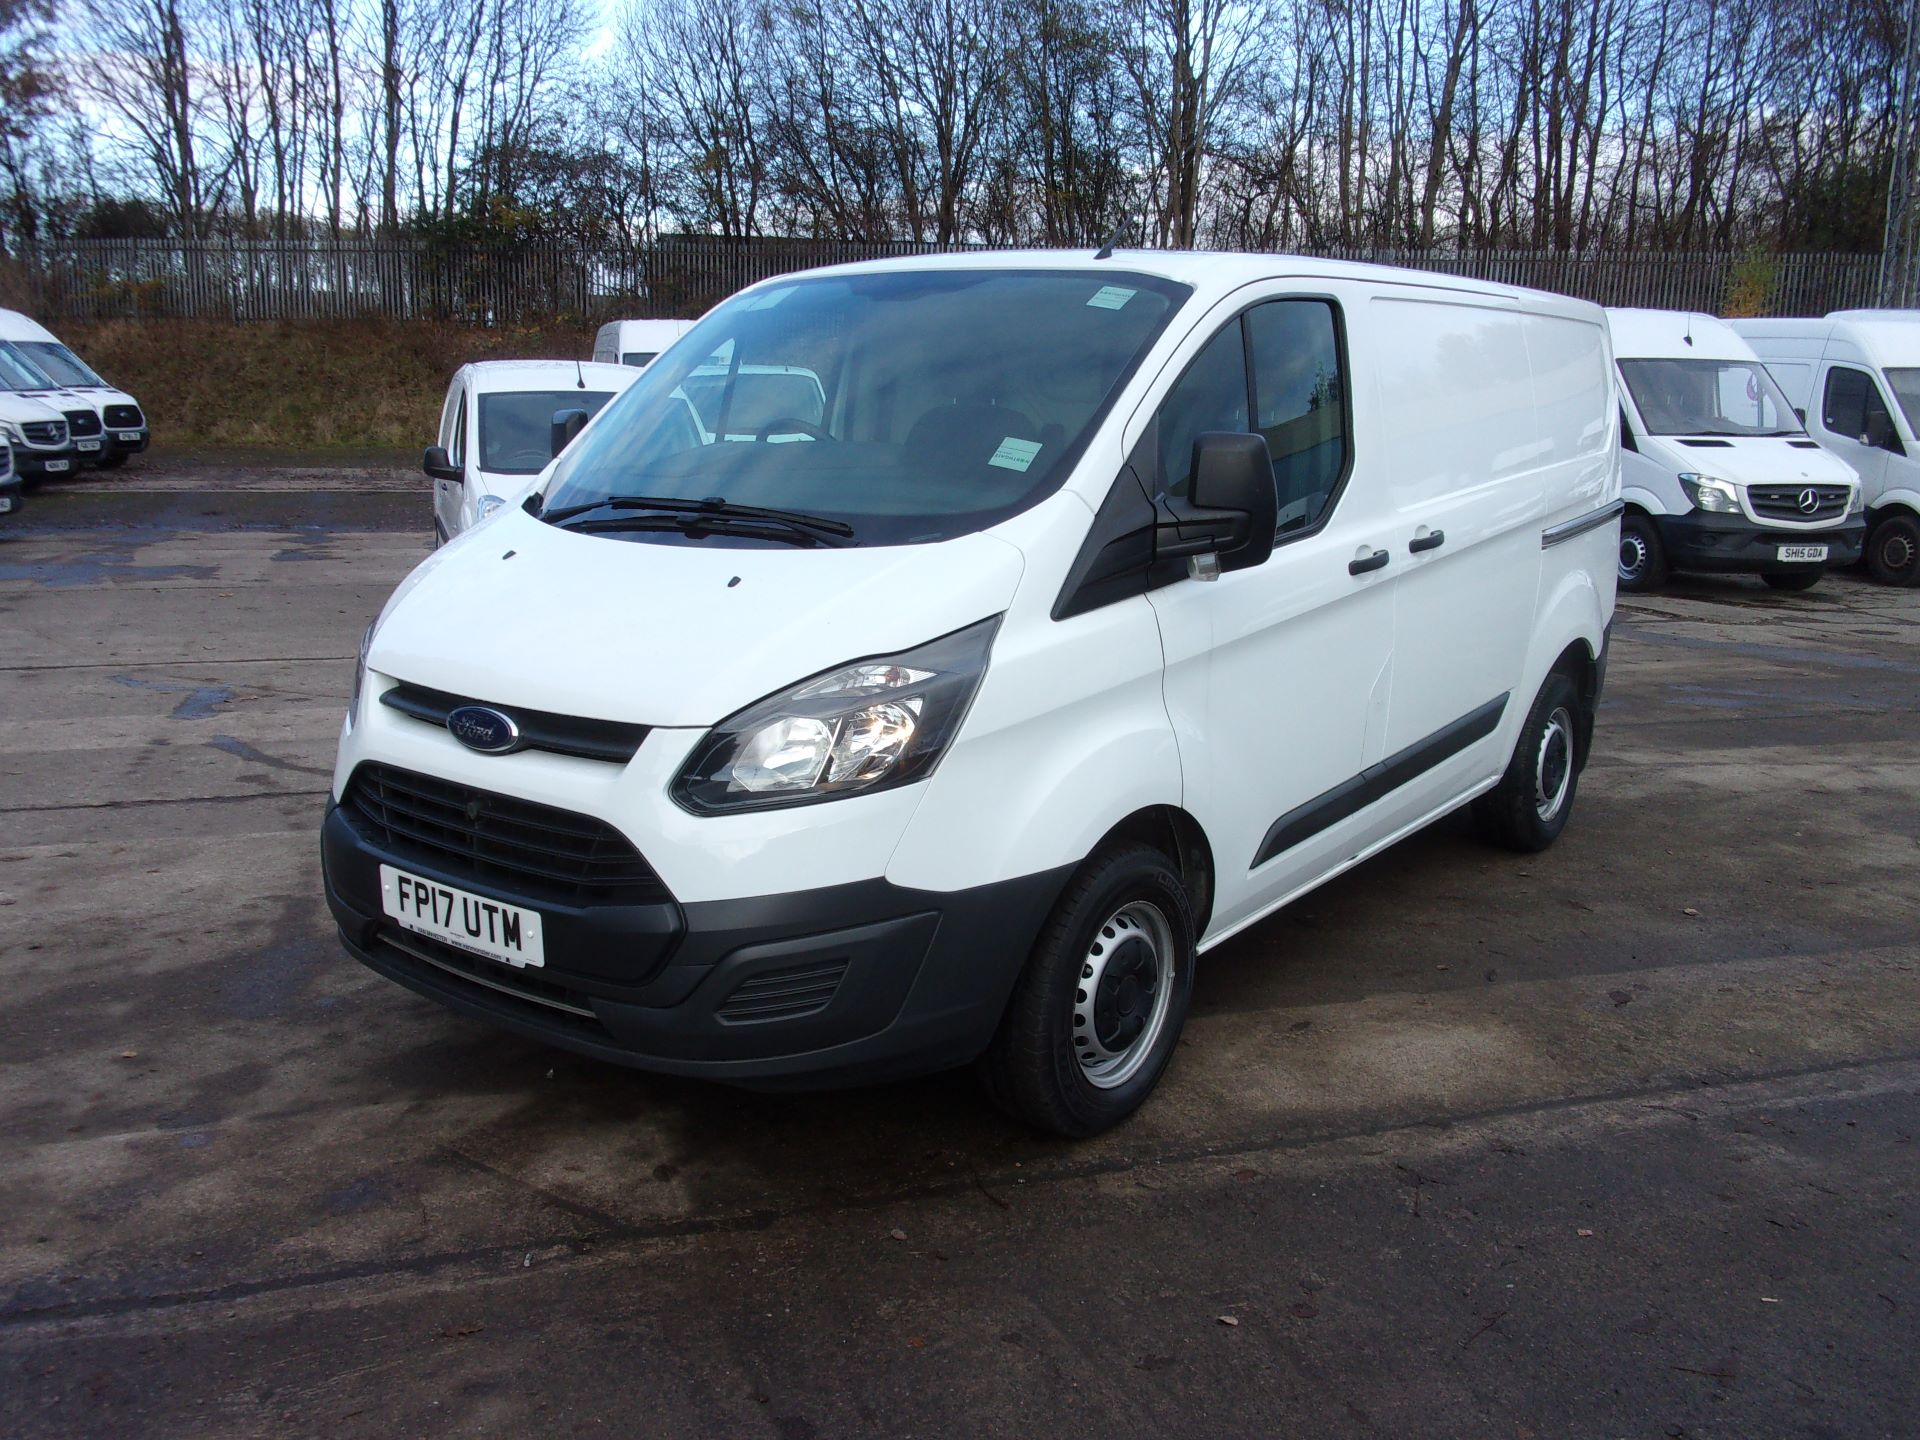 2017 Ford Transit Custom 290 L1 DIESEL FWD 2.0 TDCI 105PS LOW ROOF VAN EURO 6 *LIMITED TO 70MPH* (FP17UTM) Image 14